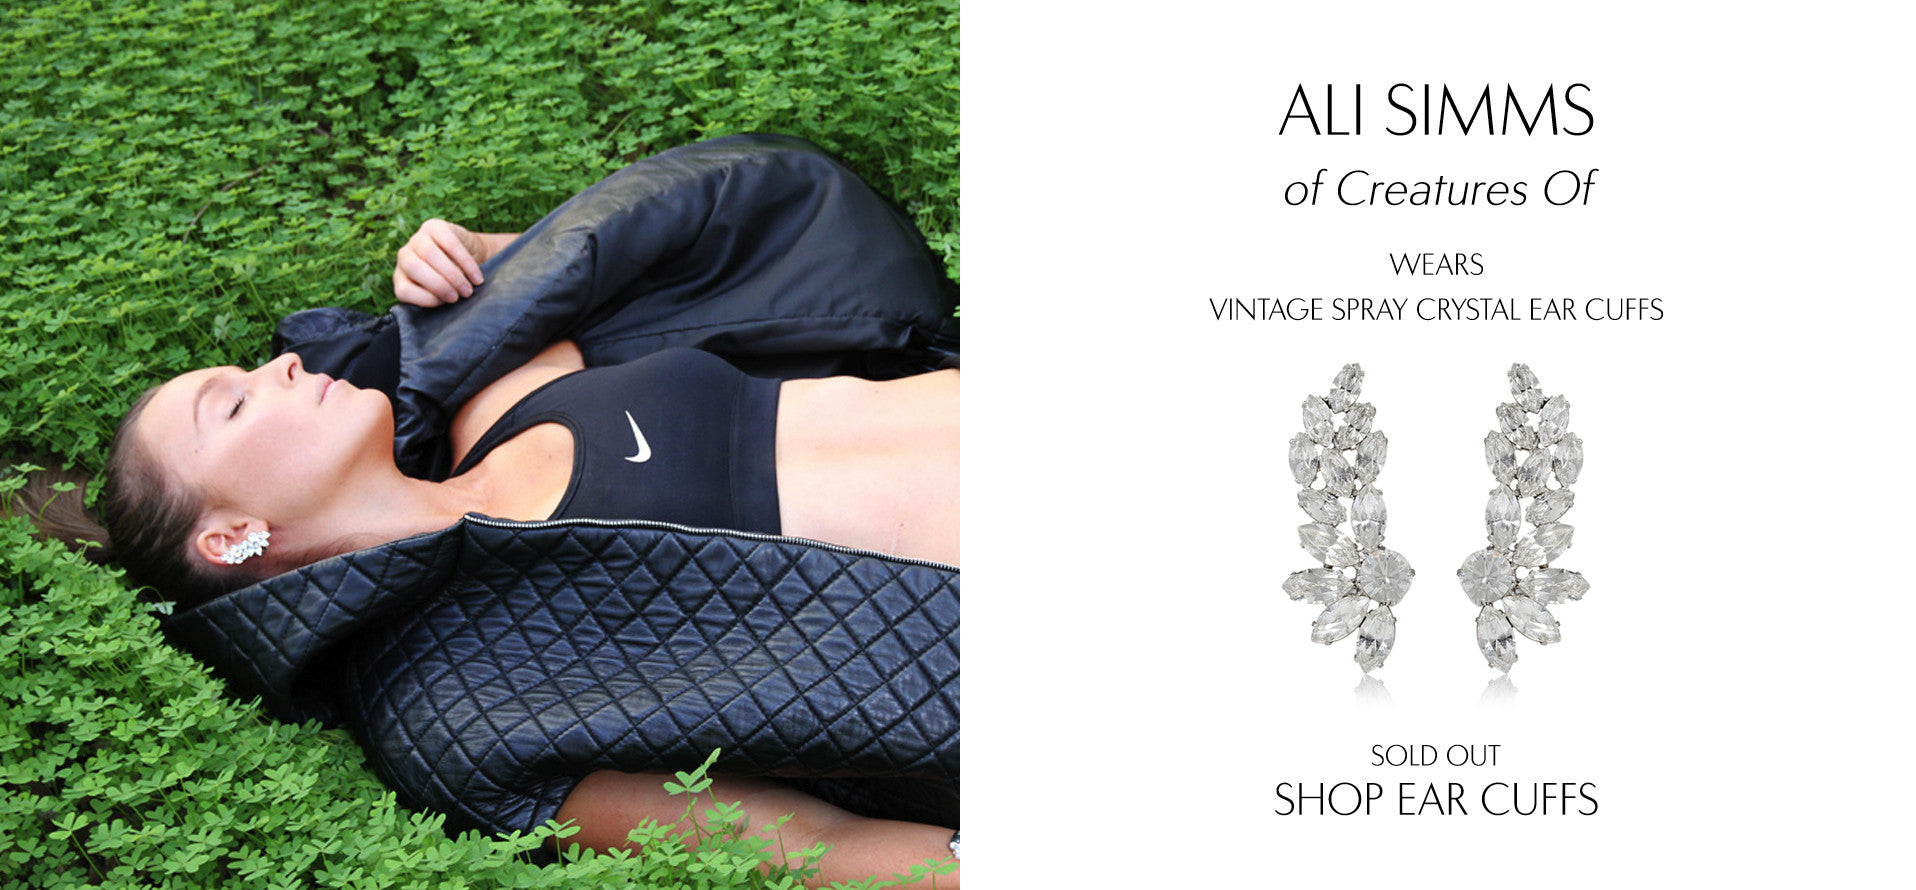 Creatures Of - Fashion Blog by Ali Simms wears Sarina Suriano Vintage Spray crystal earcuffs